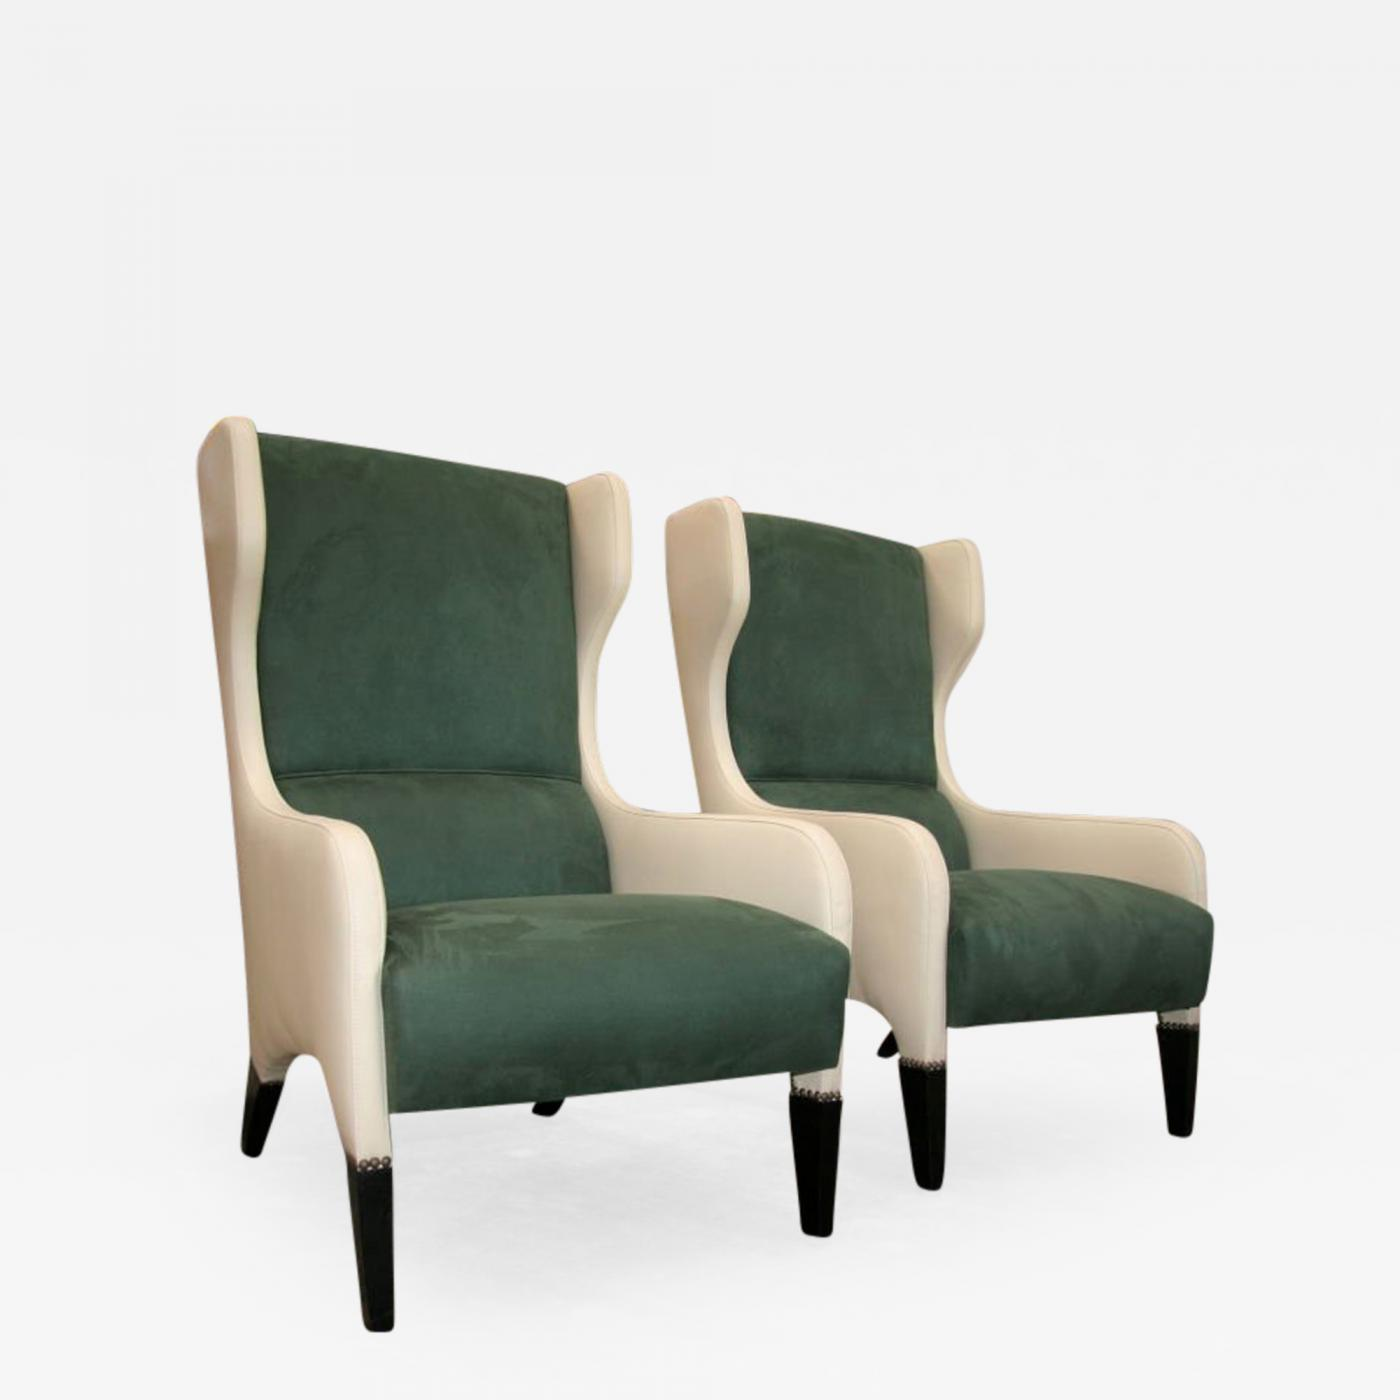 Listings / Furniture / Seating / Lounge Chairs · Gio Ponti ...